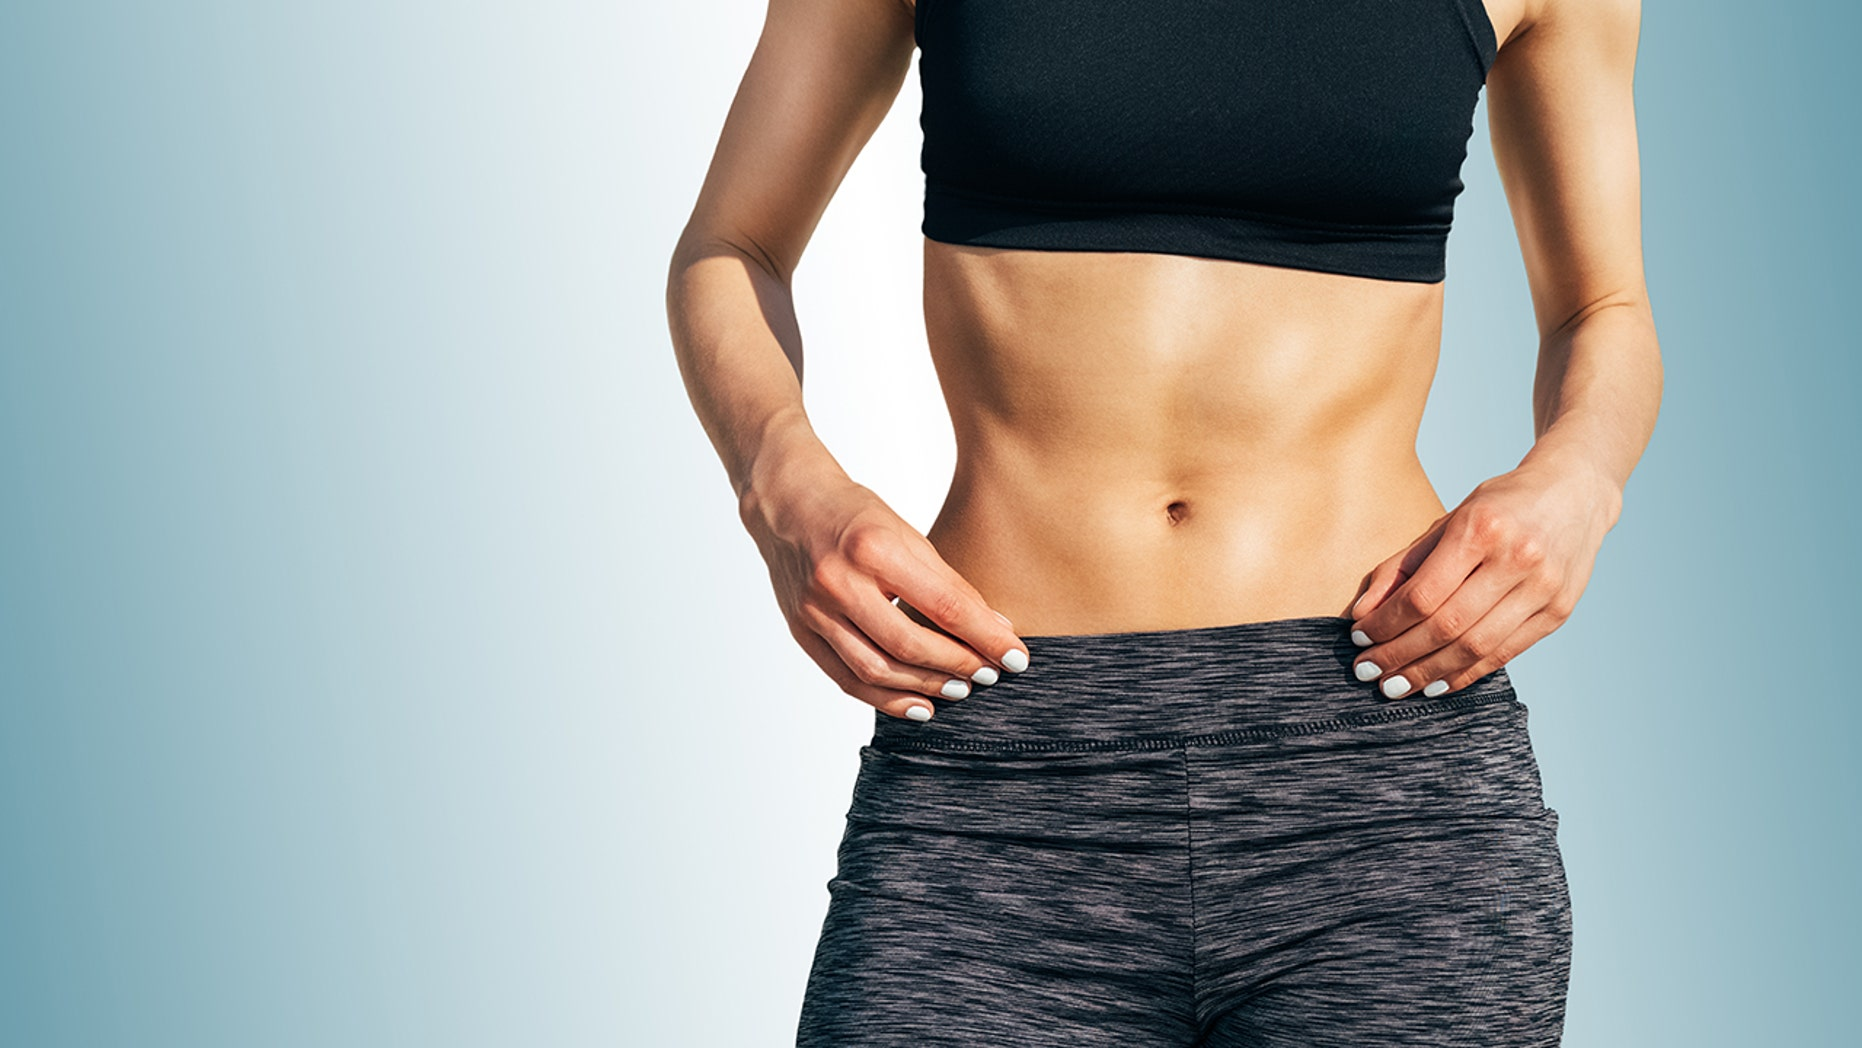 The celeb-approved treatment, CoolSculpting, freezes your unwanted fat.